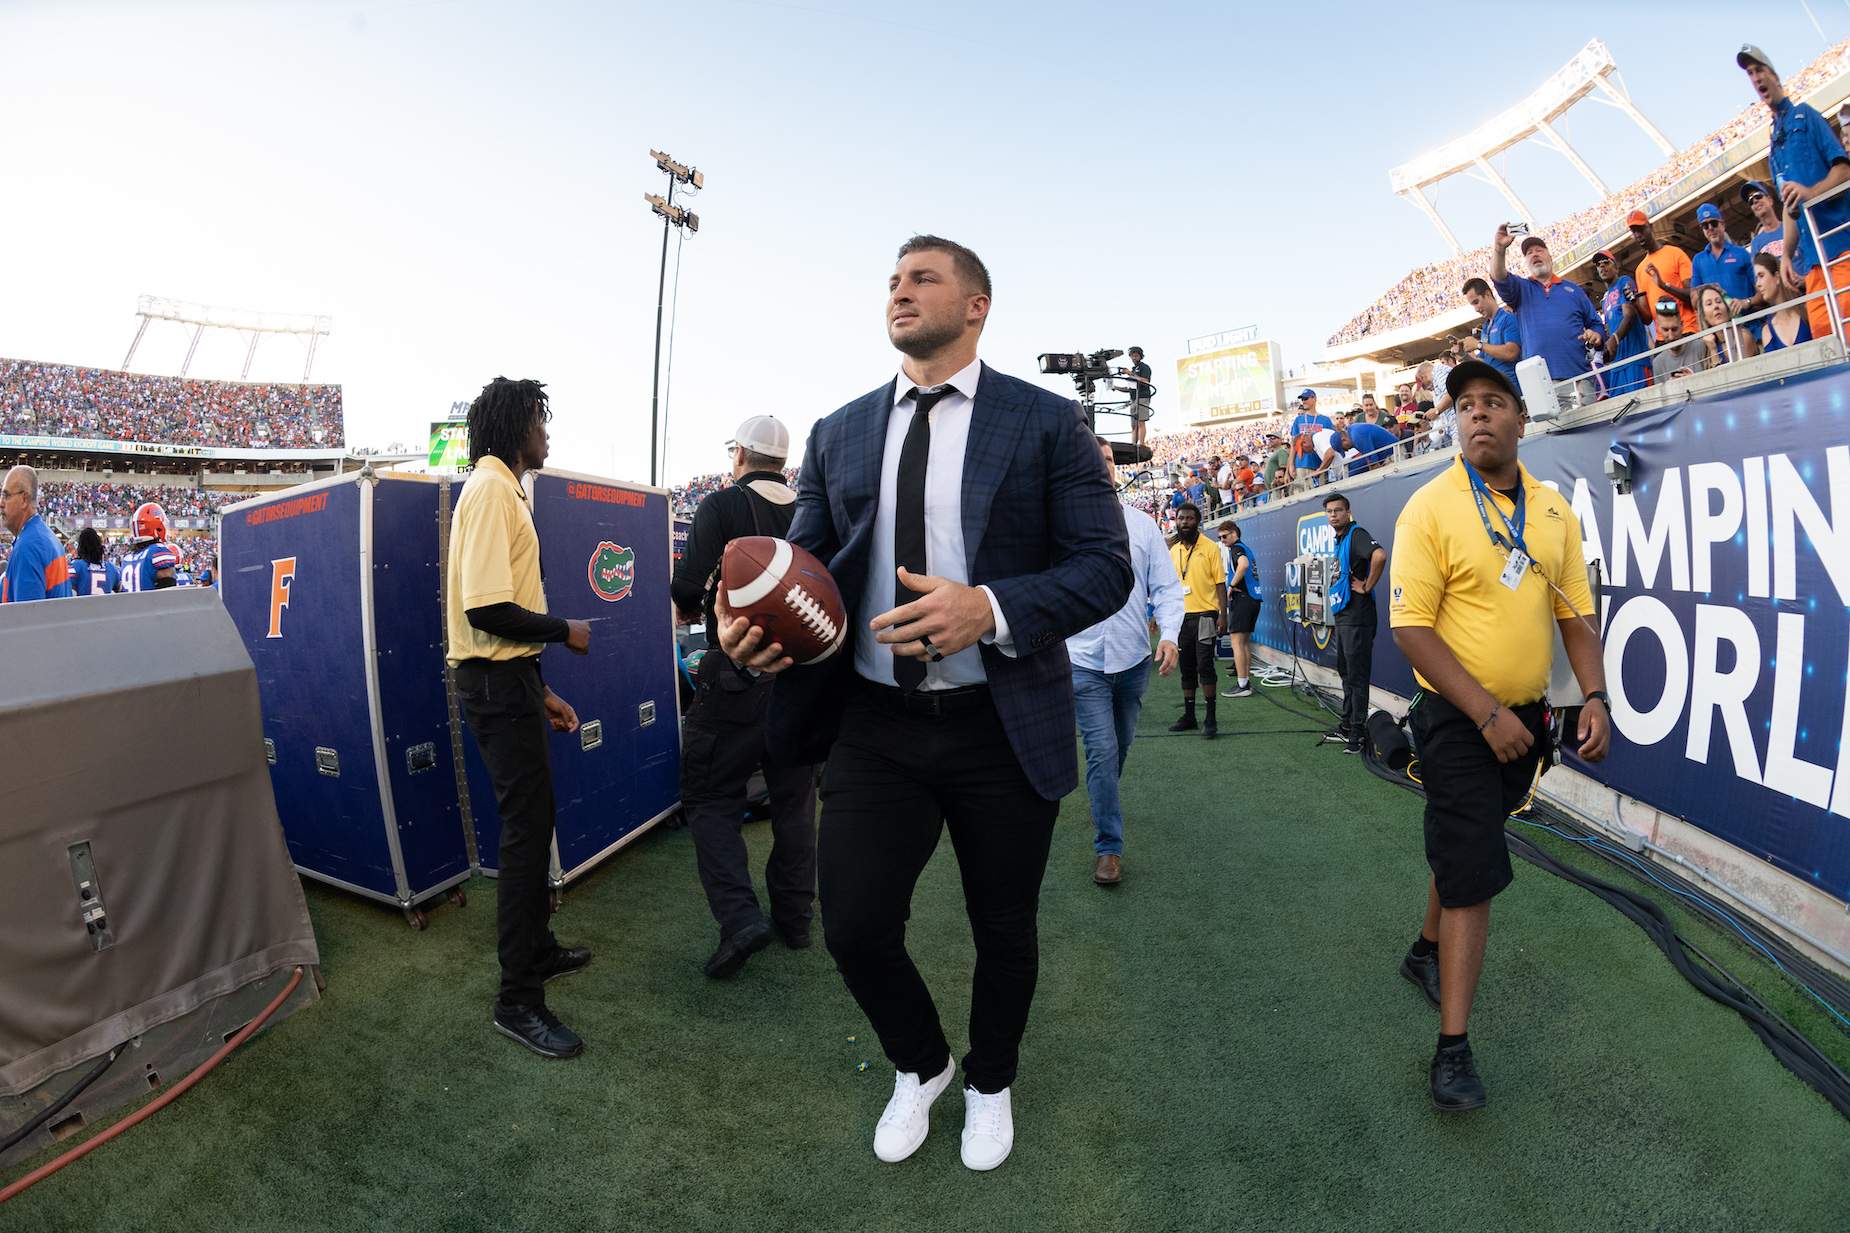 Can Tim Tebow Really Play Tight End? A Former Jacksonville Jaguar Thinks He Might Be Able to 'Get it Done'